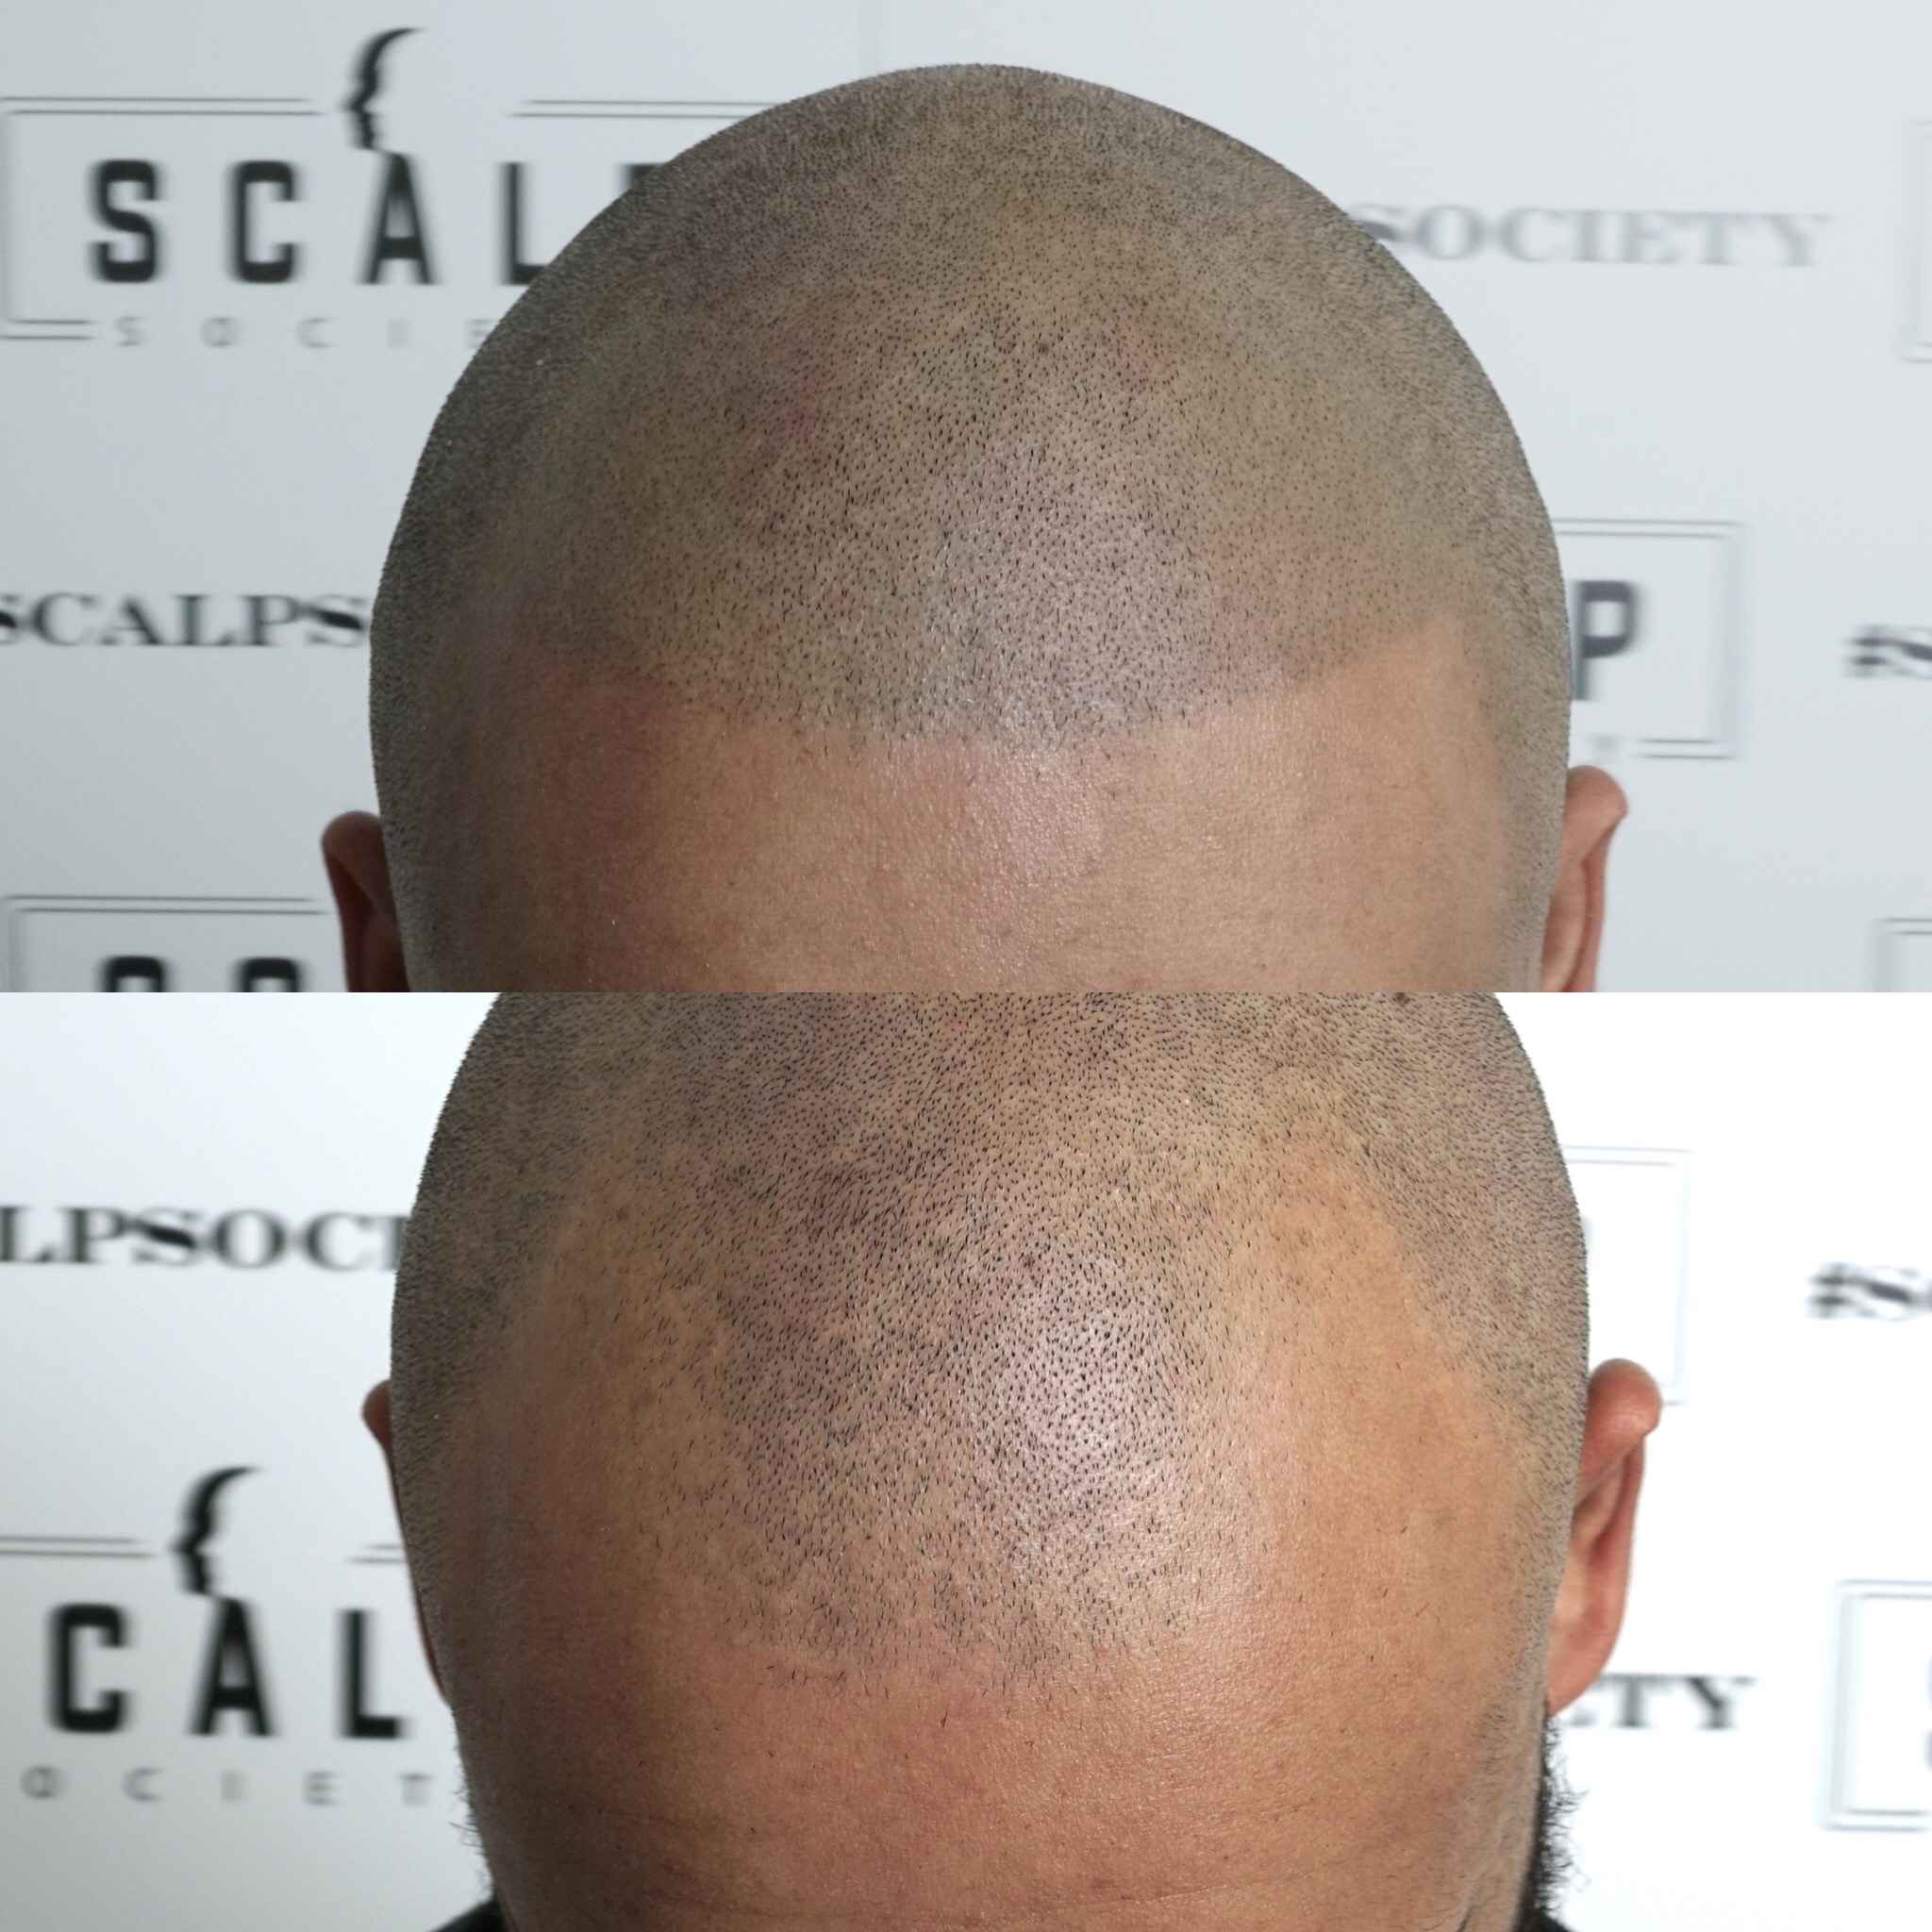 Male 33. Receding hairline, Norwood 2-3, scalp micropigmentation, to replicate hair follicles. Edged up barbershop line per client request.